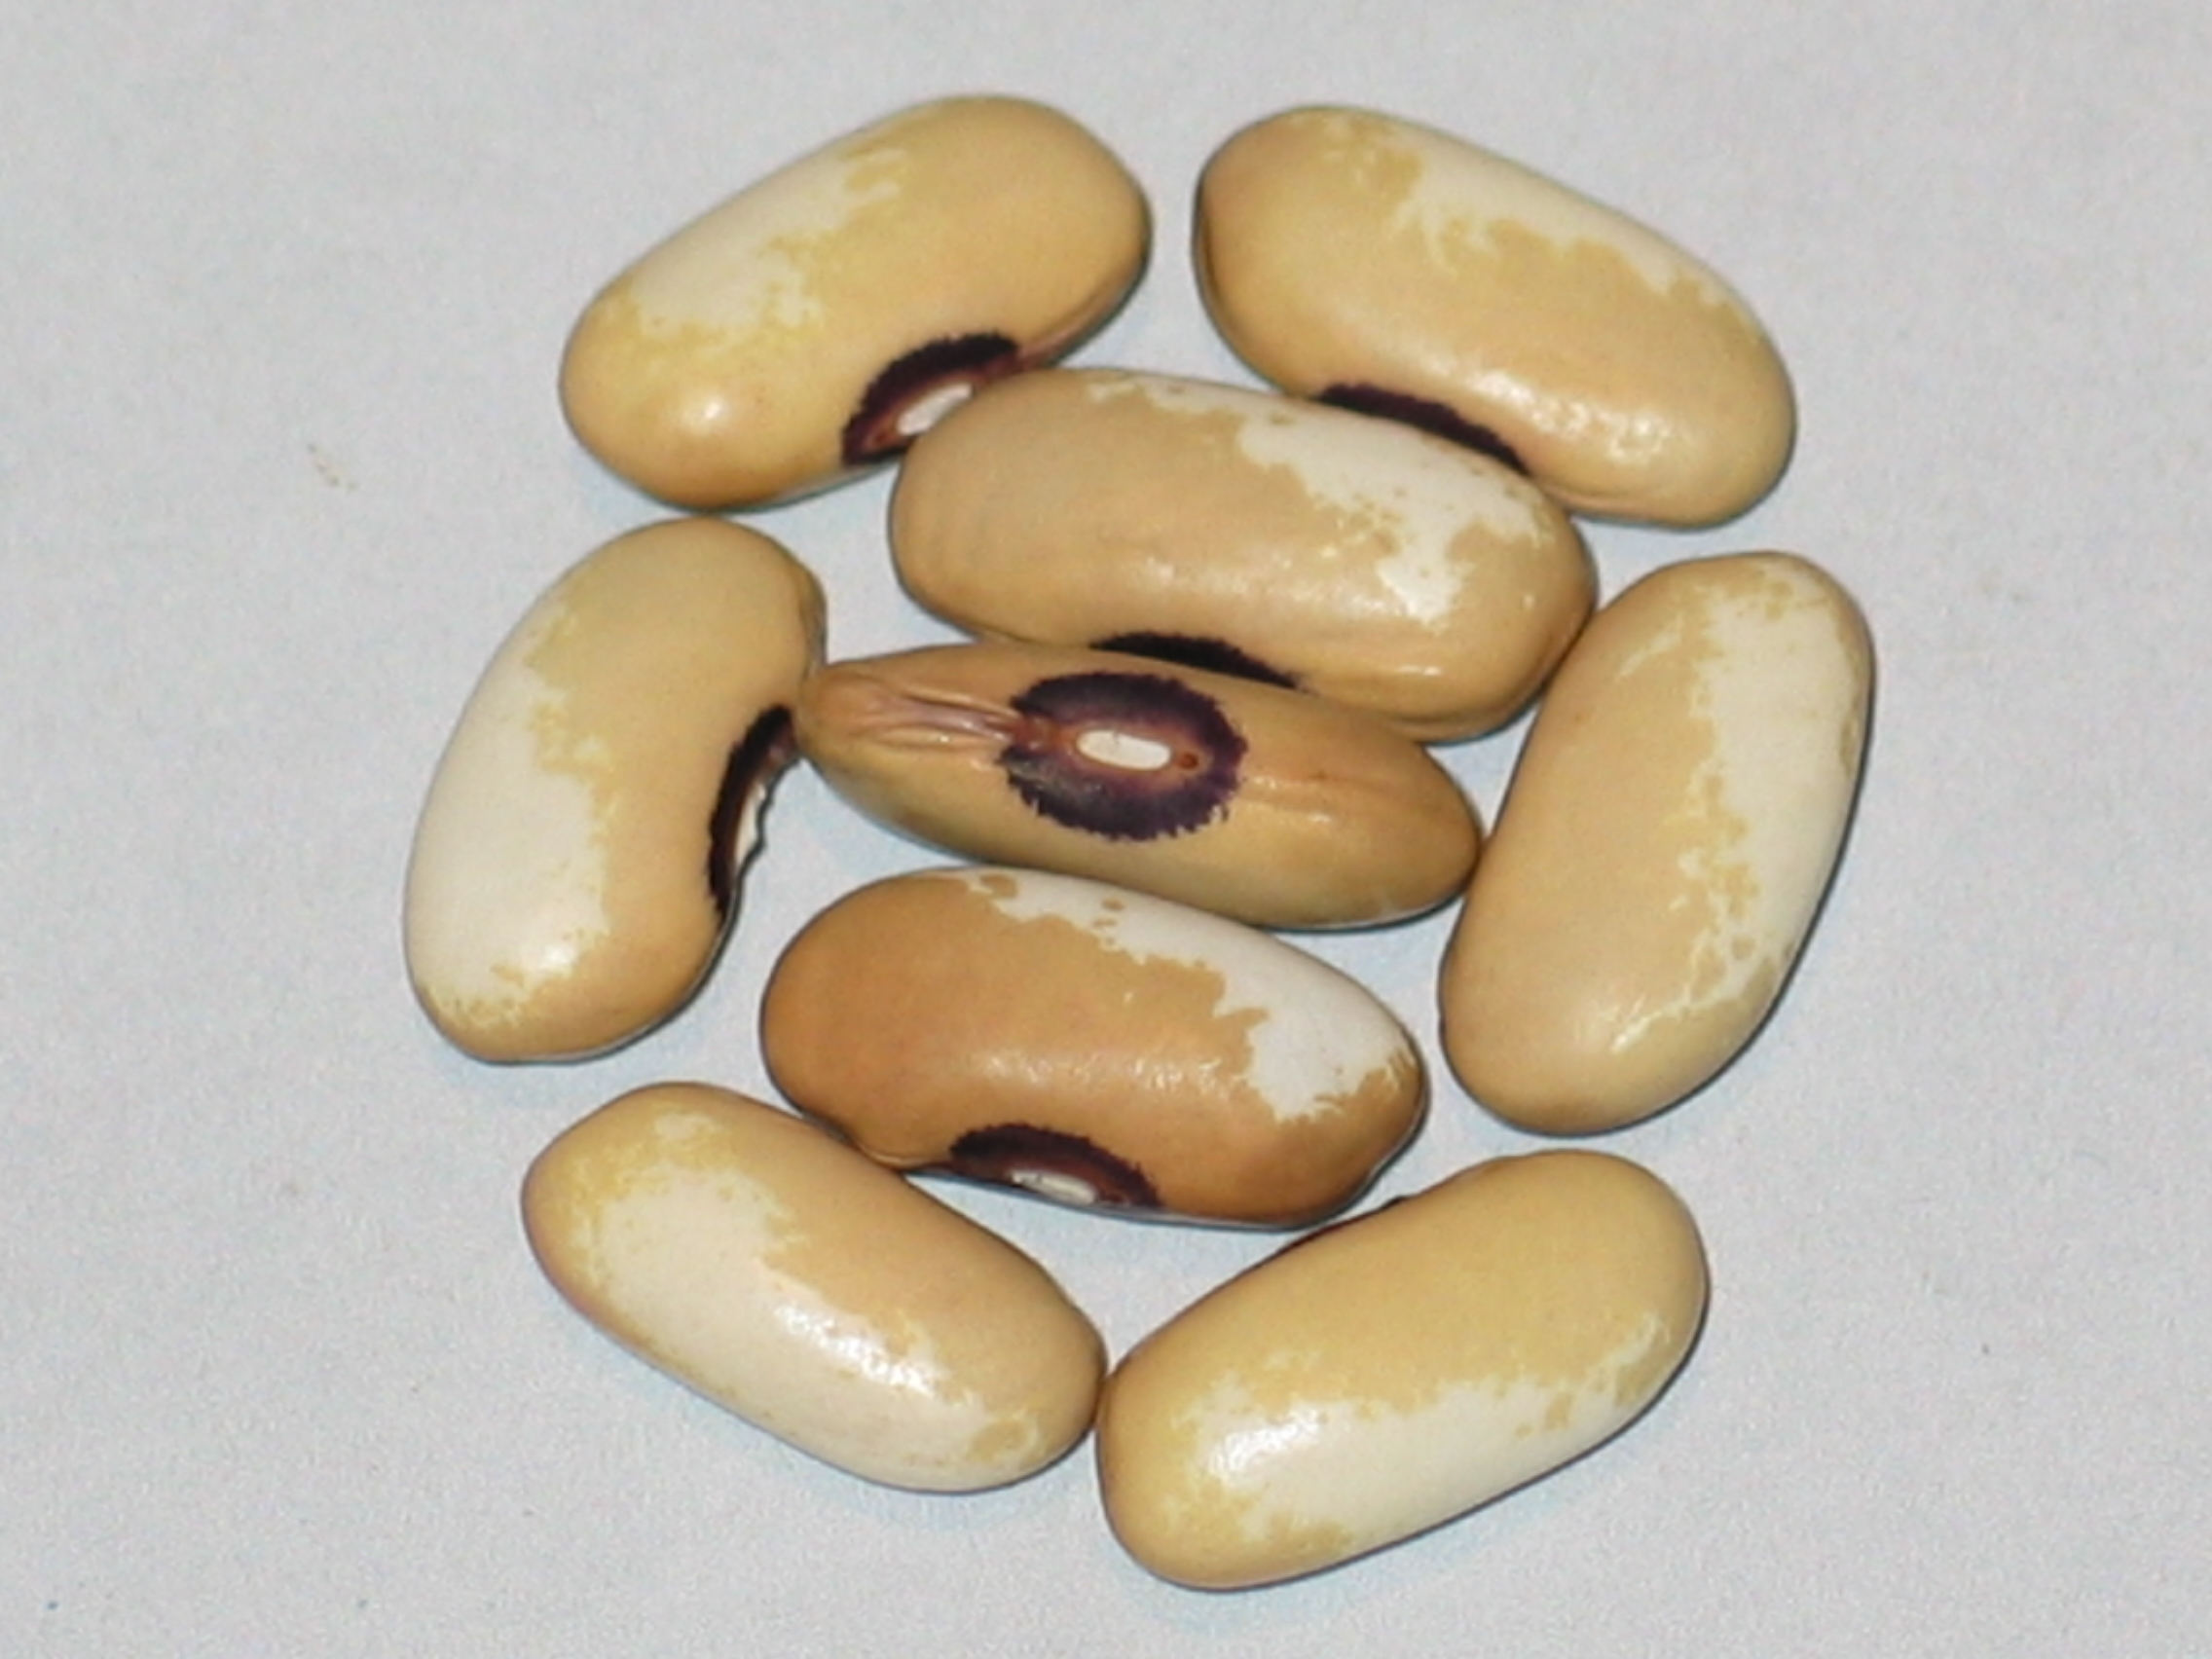 image of Hebron Bean beans